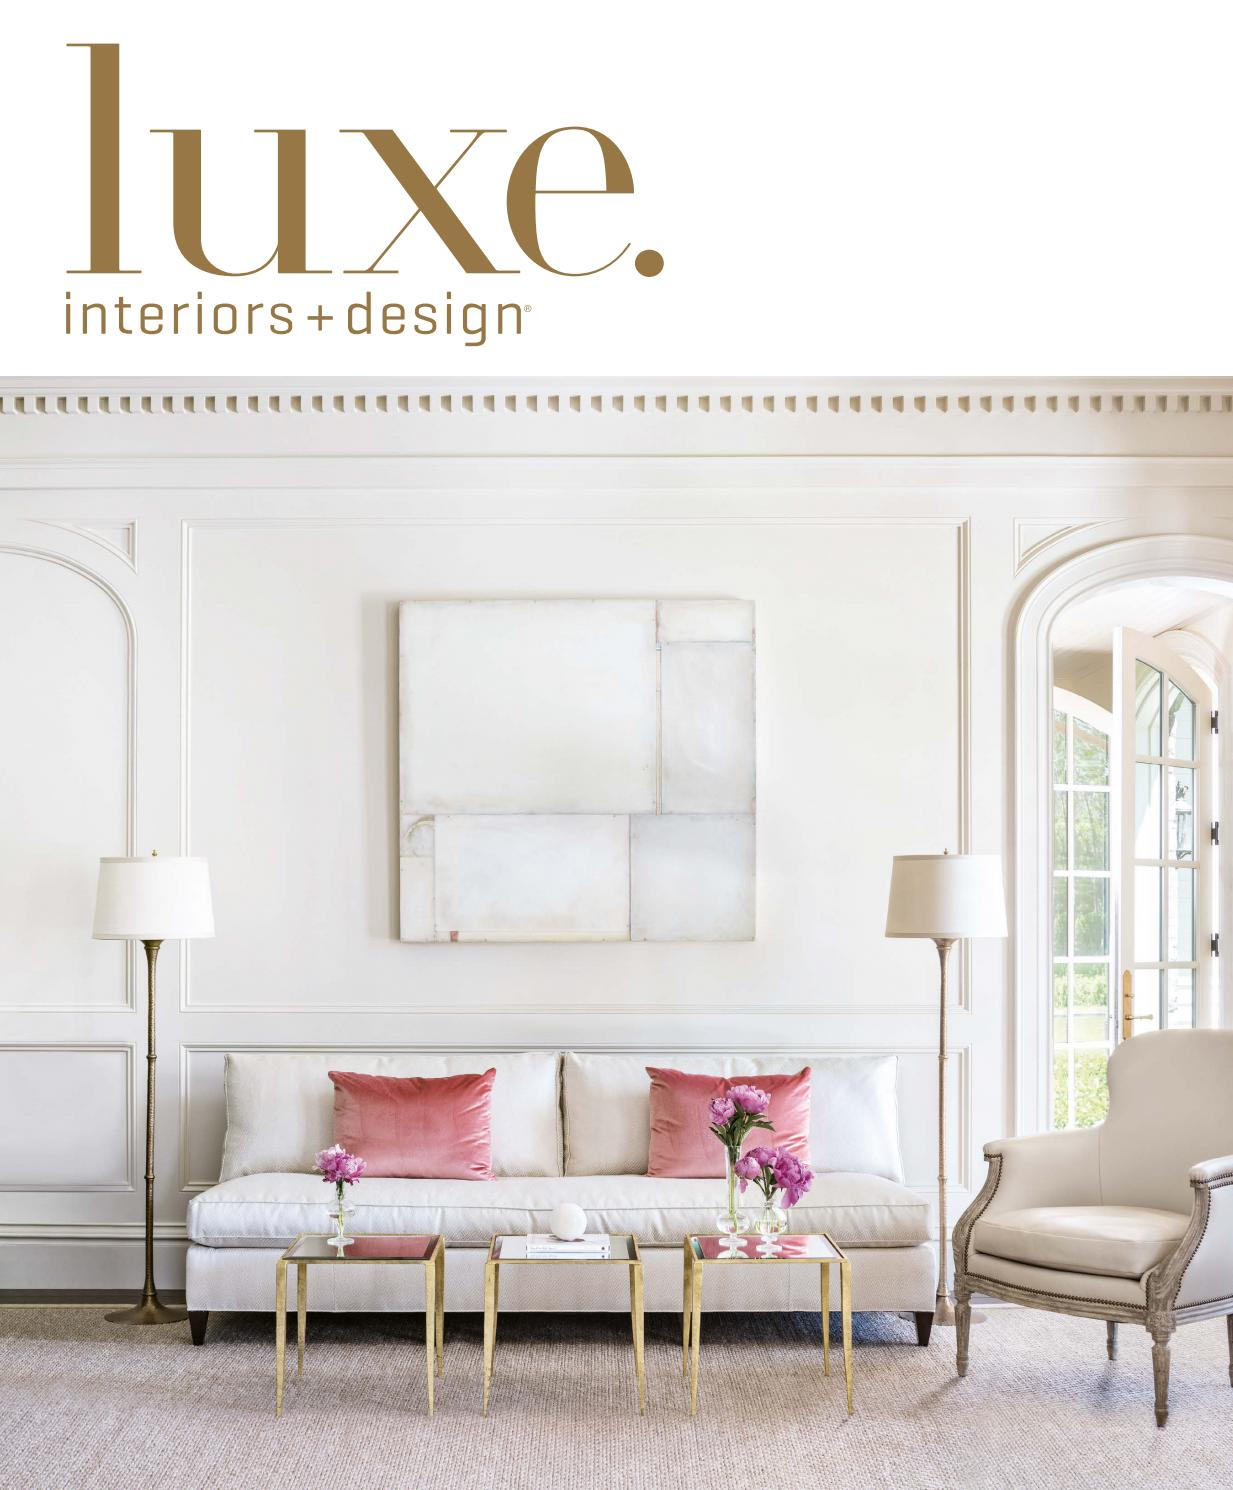 luxe magazine september 2016 national by sandow issuu. Black Bedroom Furniture Sets. Home Design Ideas